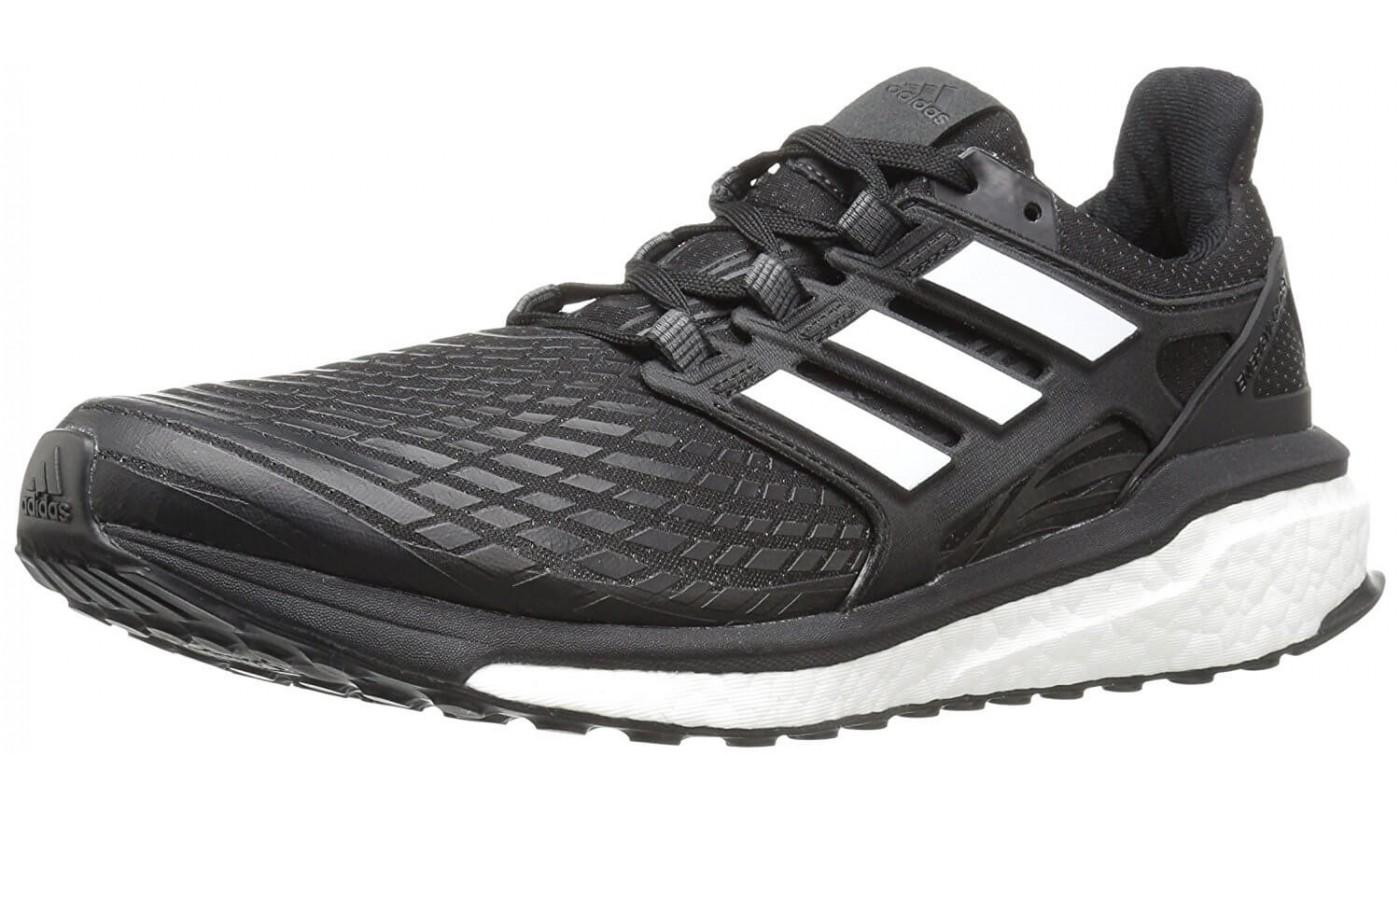 adidas energy boost aktiv 78% di sconto trevisomtb.it